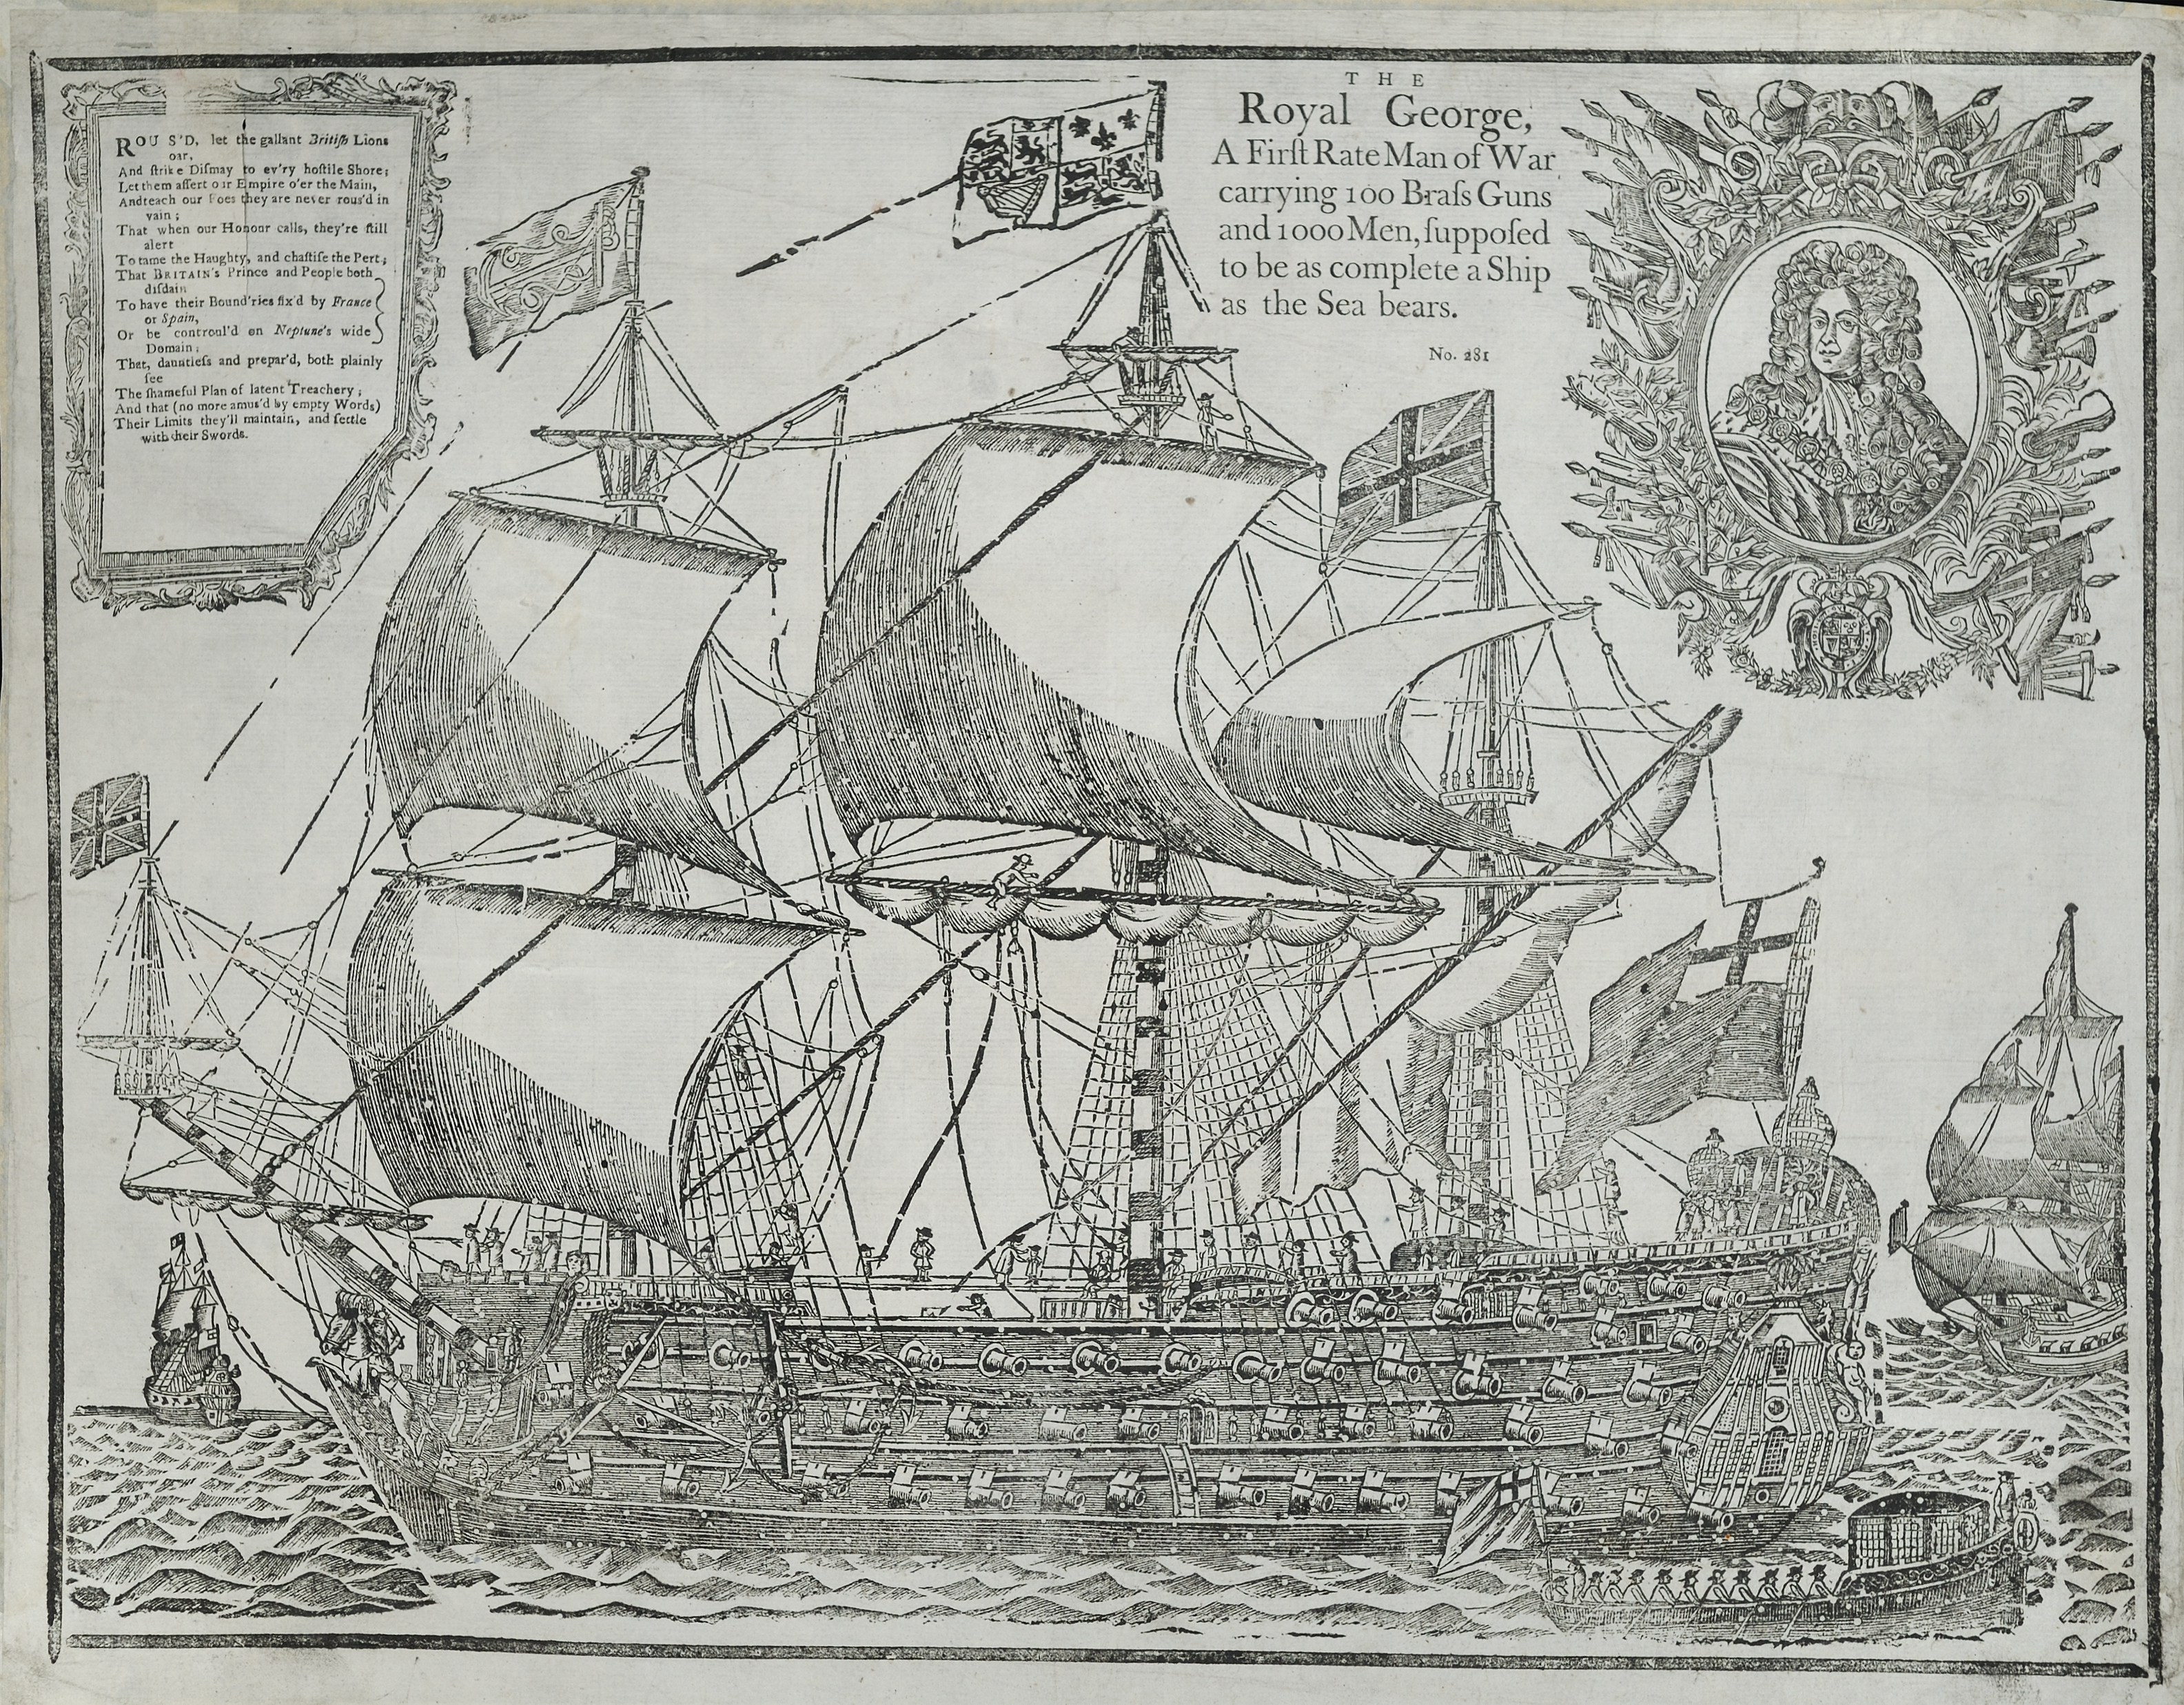 The Royal George: A First Rate Man of War Carrying 100 Brass Guns and 1000 Men, Supposed to be as Complete a Ship as the Sea Bears, [London, 1756?]